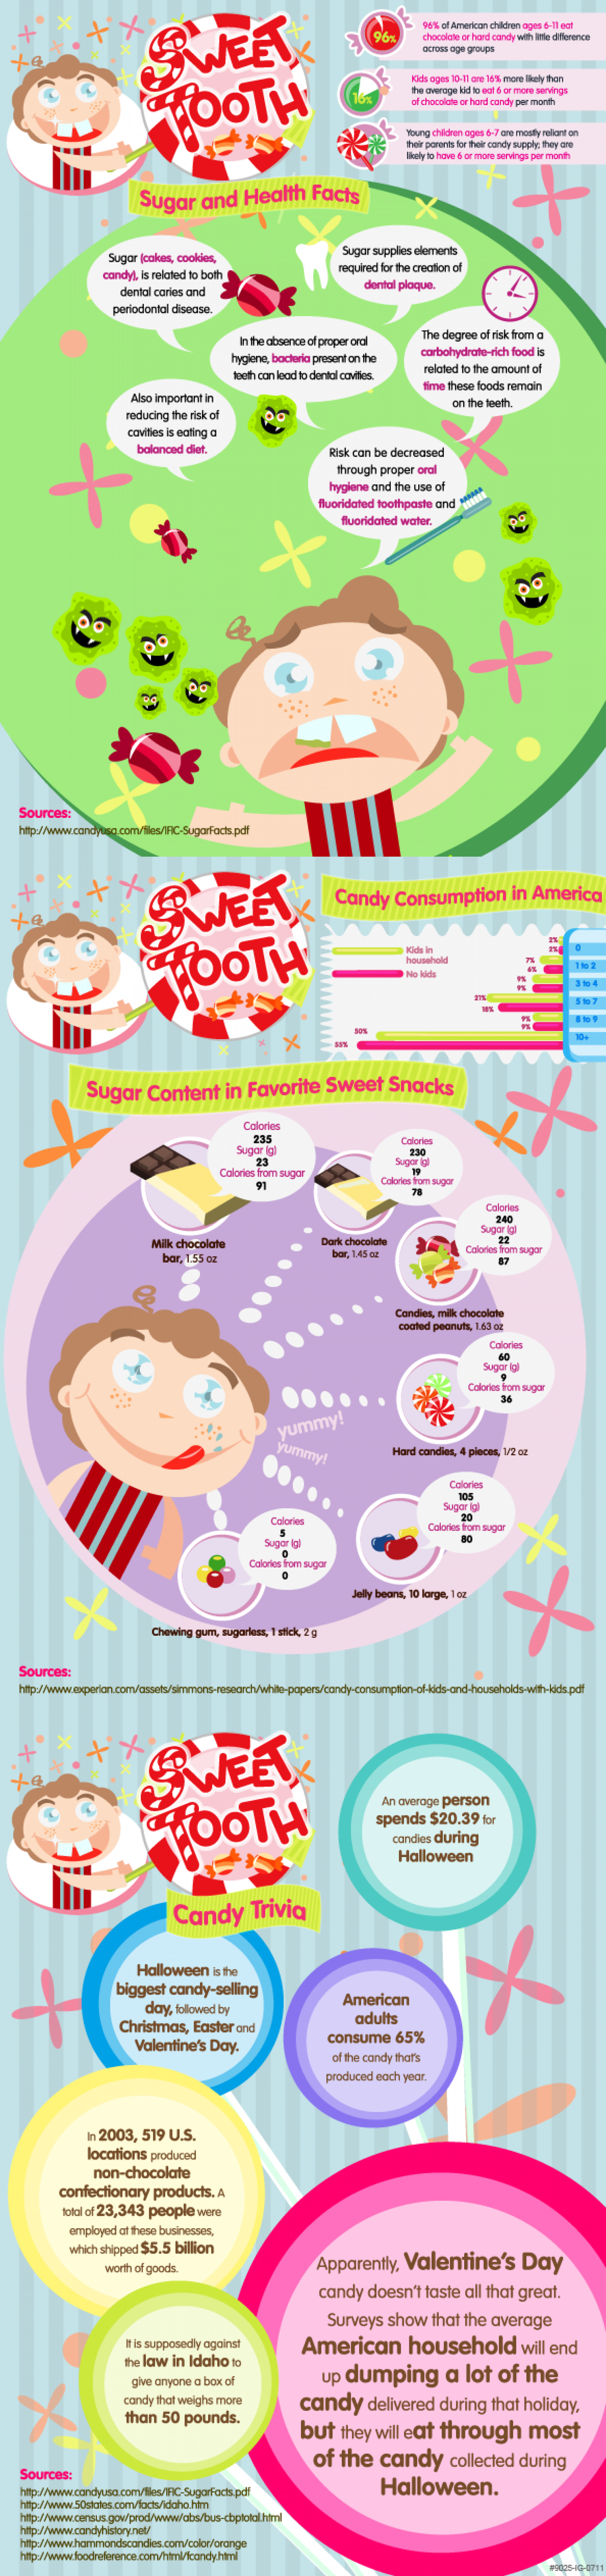 Sweet Tooth Dental Infographic Infographic